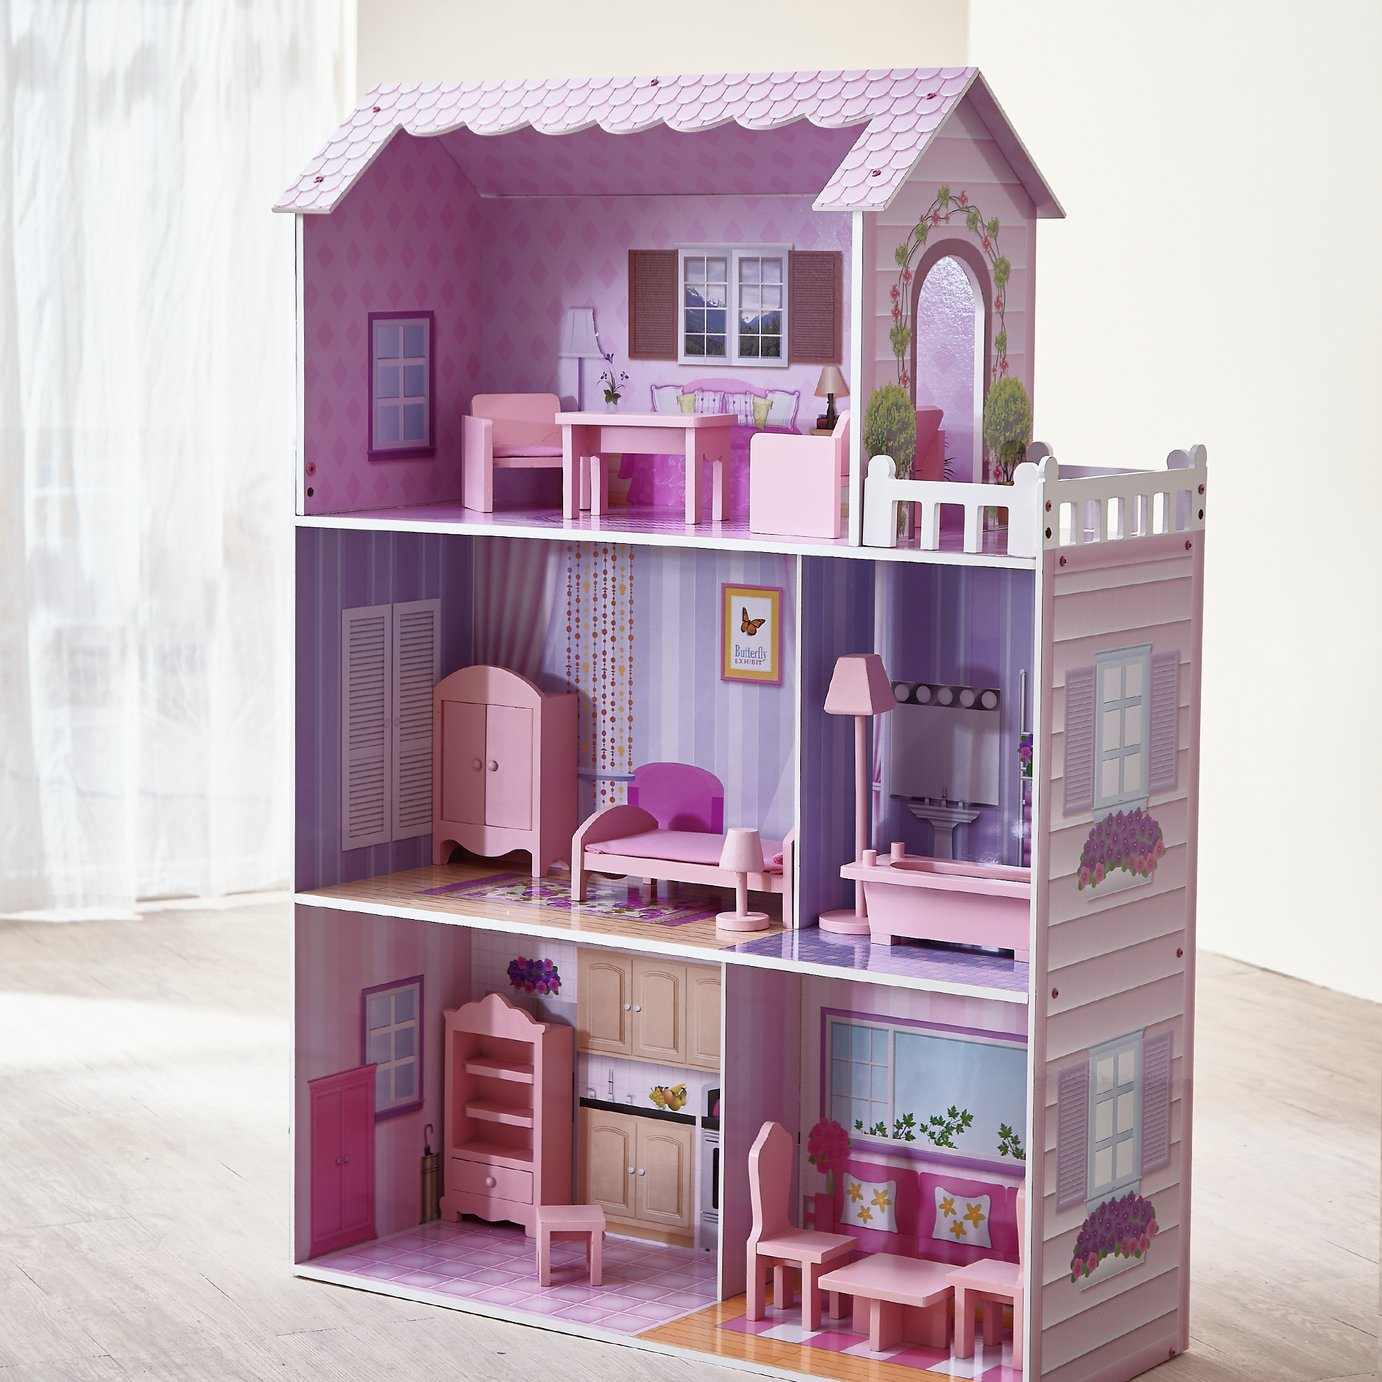 Teamson Kids Dreamland 12 inch Wooden Dolls House - Pink